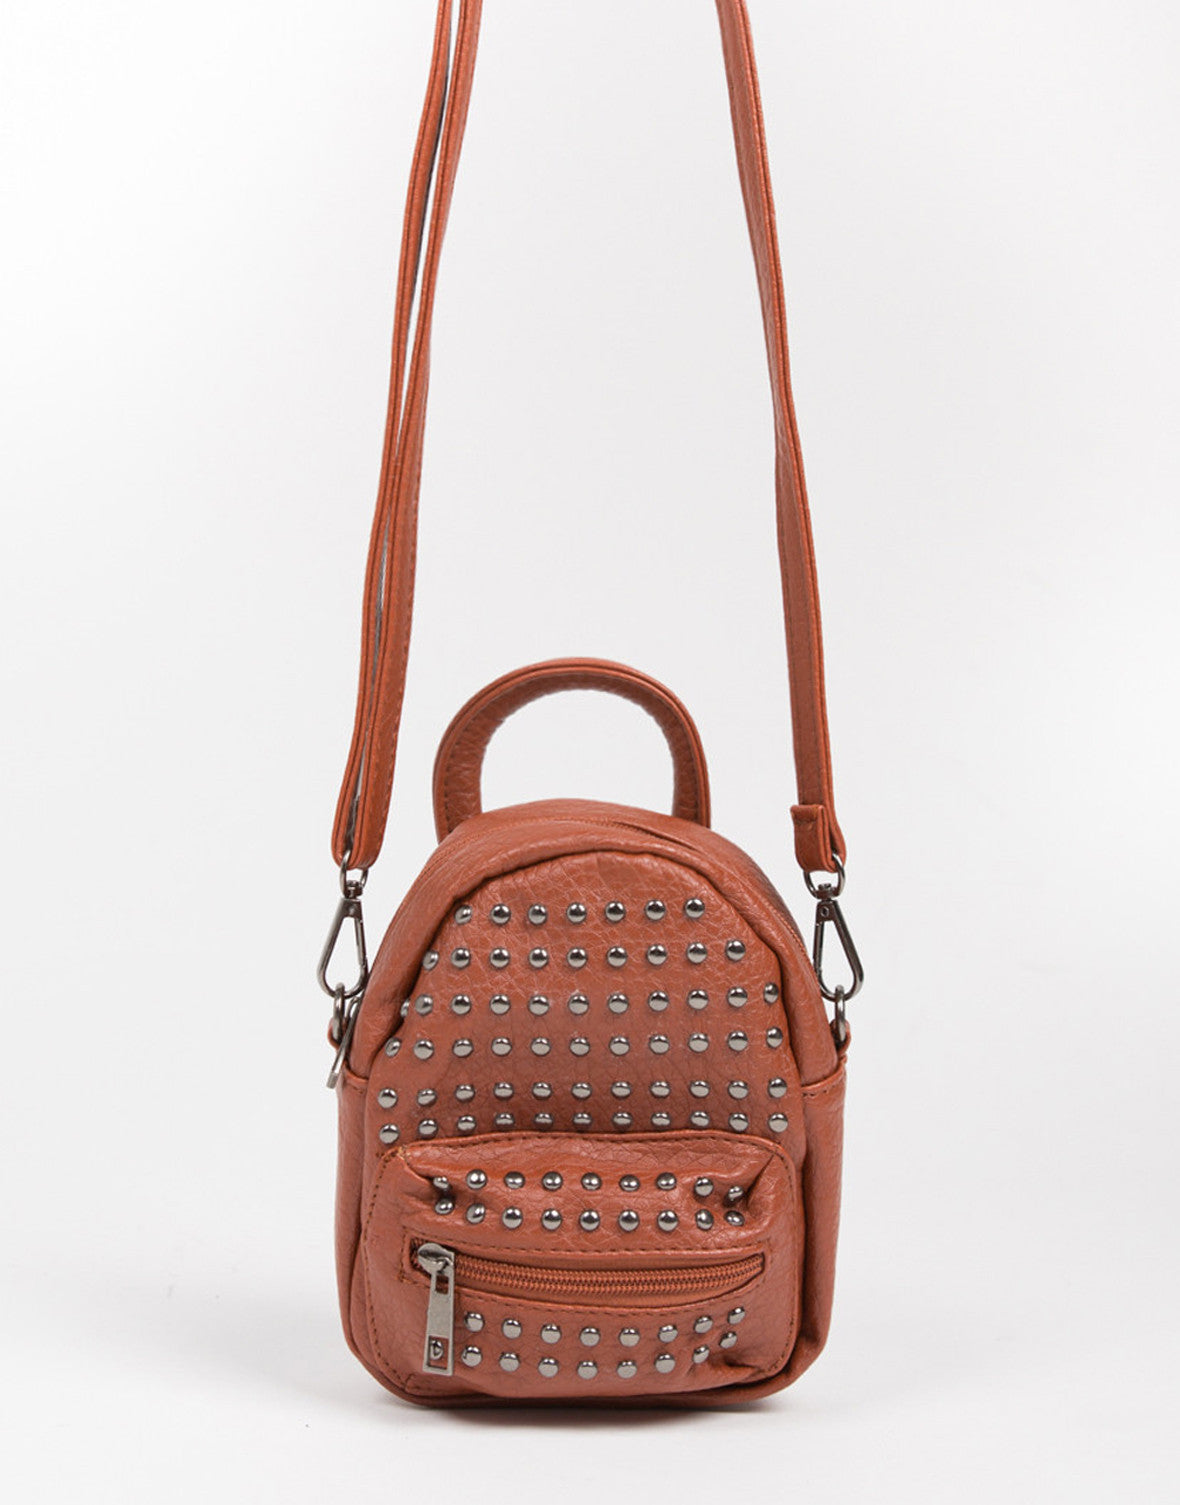 Total Stud Mini Bag